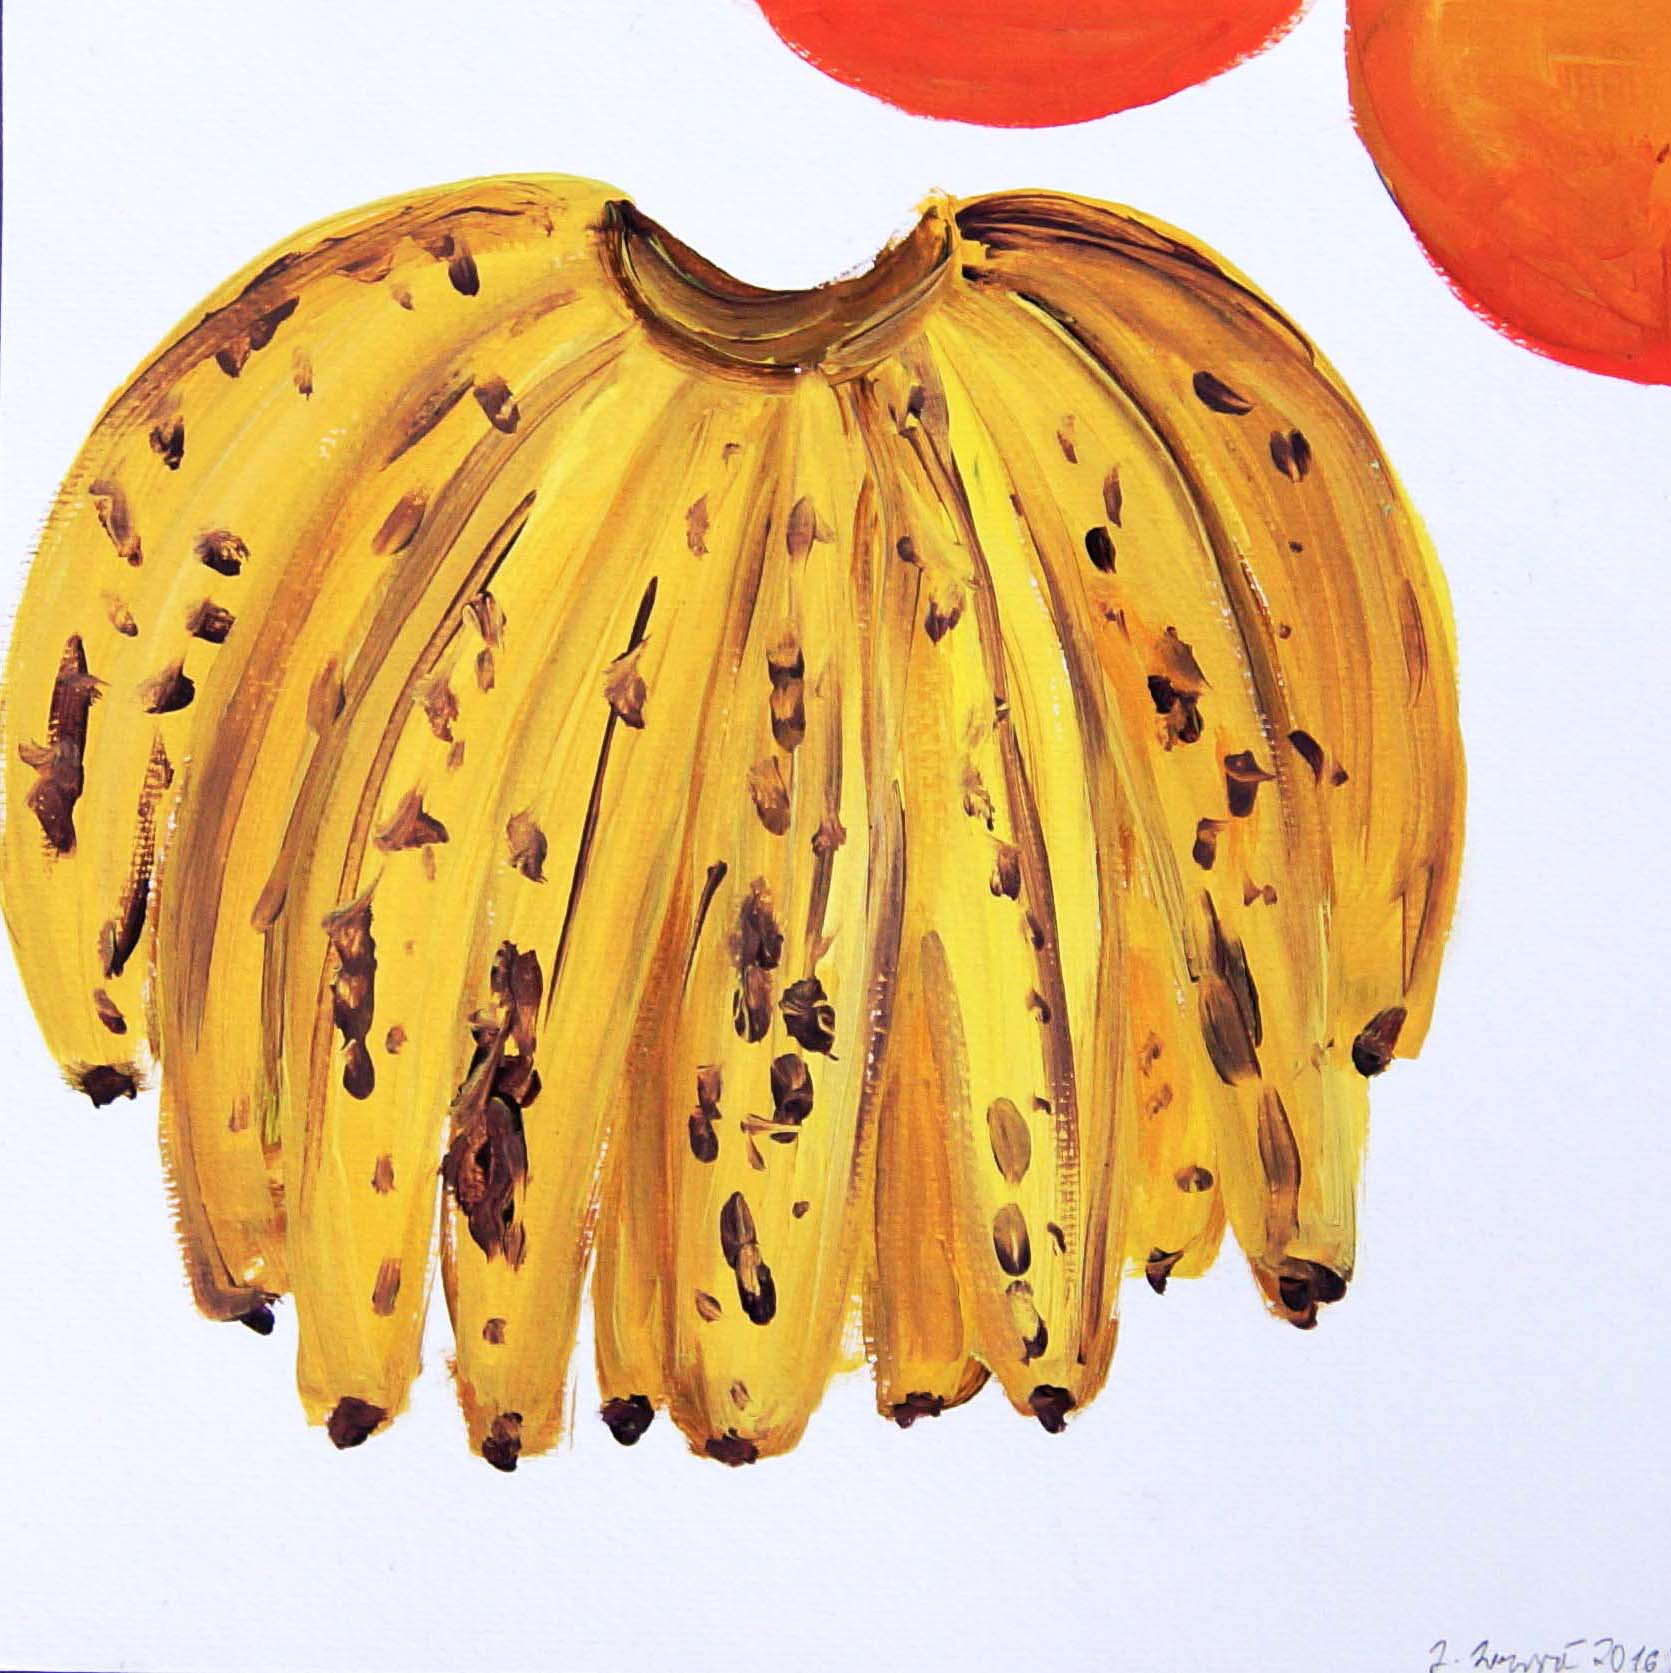 Juliana Mrvova, Bananas, Acrylic on paper, 30 x 30 cm, 2016